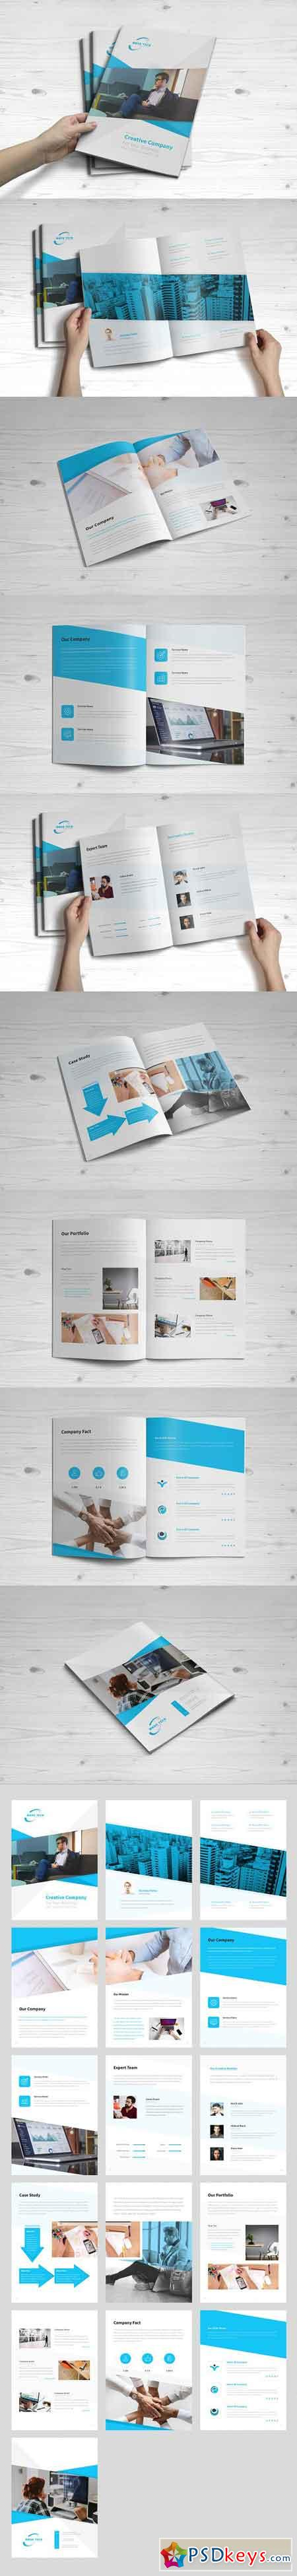 Business Brochure 16 Pages 2730864